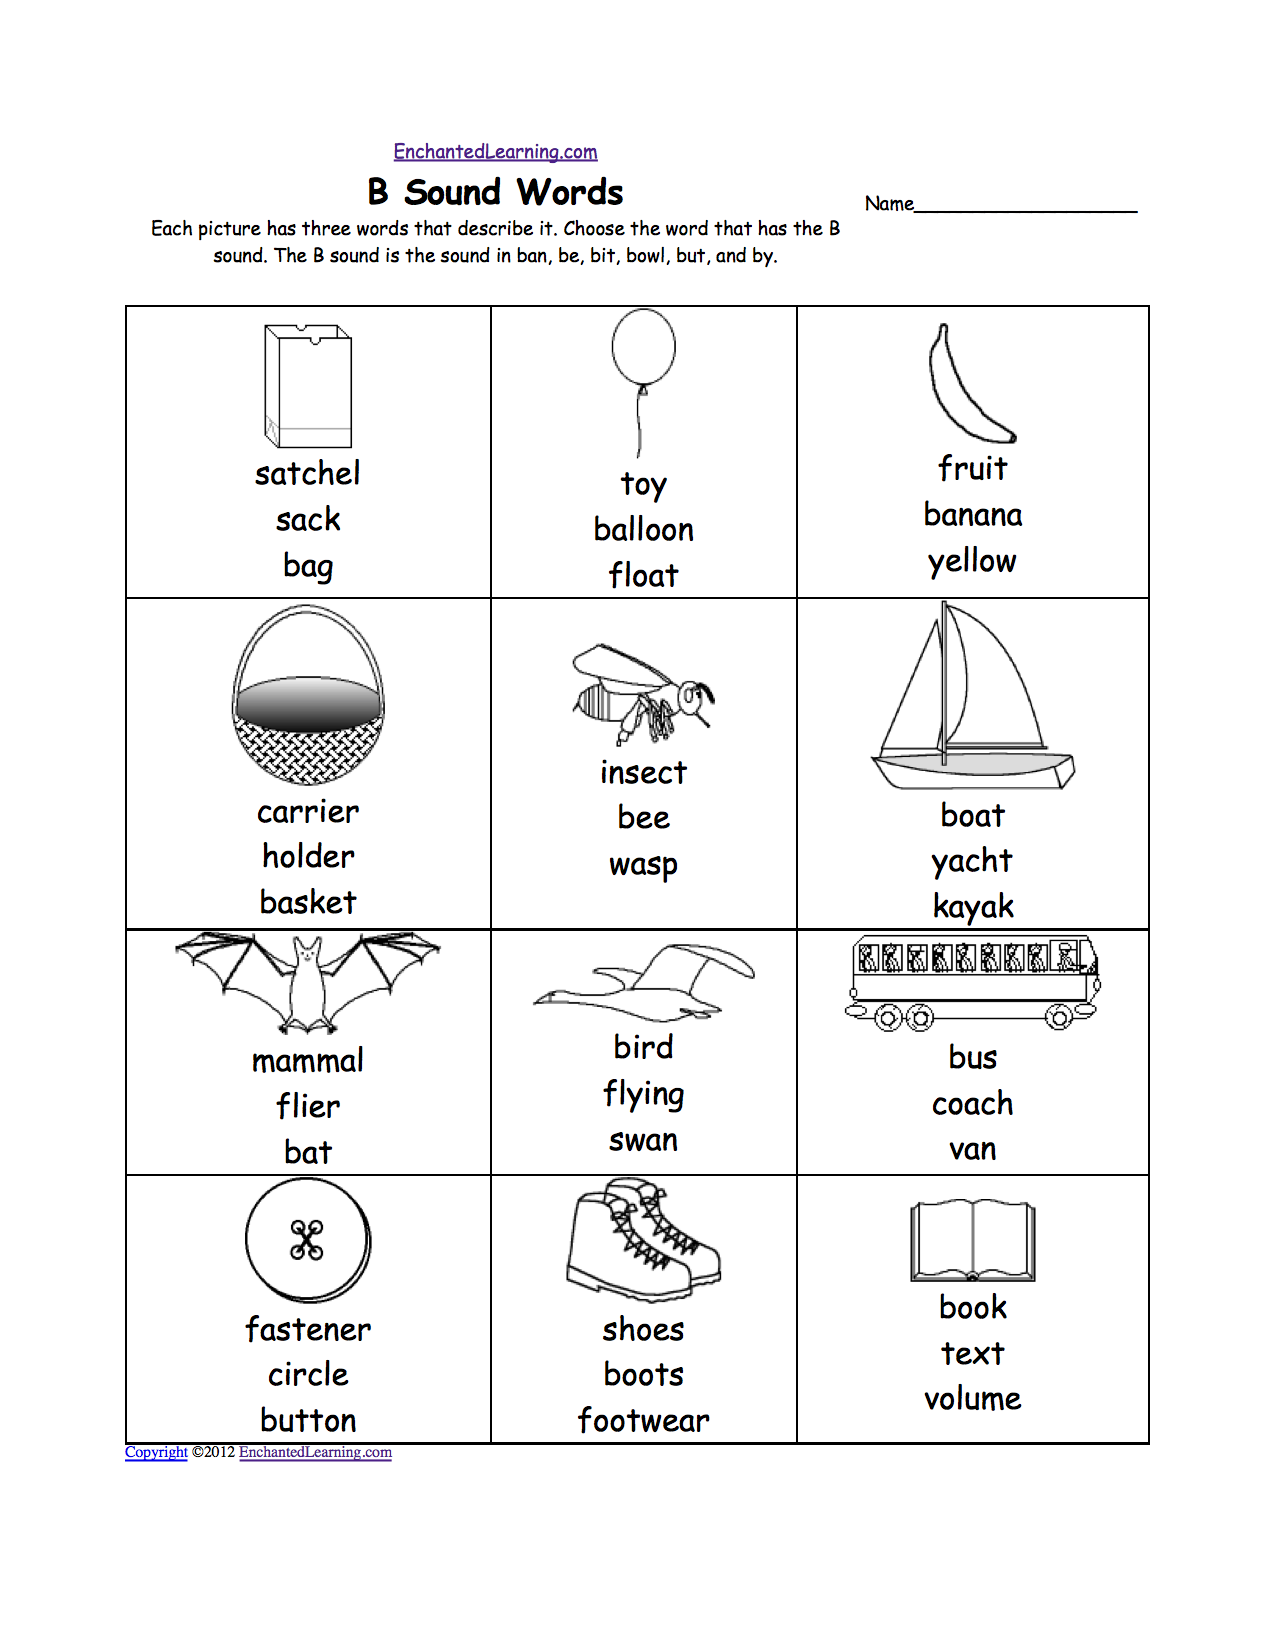 Aldiablosus  Splendid Phonics Worksheets Multiple Choice Worksheets To Print  With Entrancing Quotbquot Sound Phonics Worksheet Multiple Choice Each Picture Has Three Words That Describe It Choose The Word That Has A Quotbquot Sound The Quotbquot Sound Is The Sound  With Delightful Printing Worksheet Generator Also Active And Passive Voice Worksheets For Grade  In Addition French Present Tense Worksheet And Decimal Multiplication Worksheets Th Grade As Well As Number Bonds To  Worksheet Year  Additionally Math Worksheets Th Grade Printable From Enchantedlearningcom With Aldiablosus  Entrancing Phonics Worksheets Multiple Choice Worksheets To Print  With Delightful Quotbquot Sound Phonics Worksheet Multiple Choice Each Picture Has Three Words That Describe It Choose The Word That Has A Quotbquot Sound The Quotbquot Sound Is The Sound  And Splendid Printing Worksheet Generator Also Active And Passive Voice Worksheets For Grade  In Addition French Present Tense Worksheet From Enchantedlearningcom